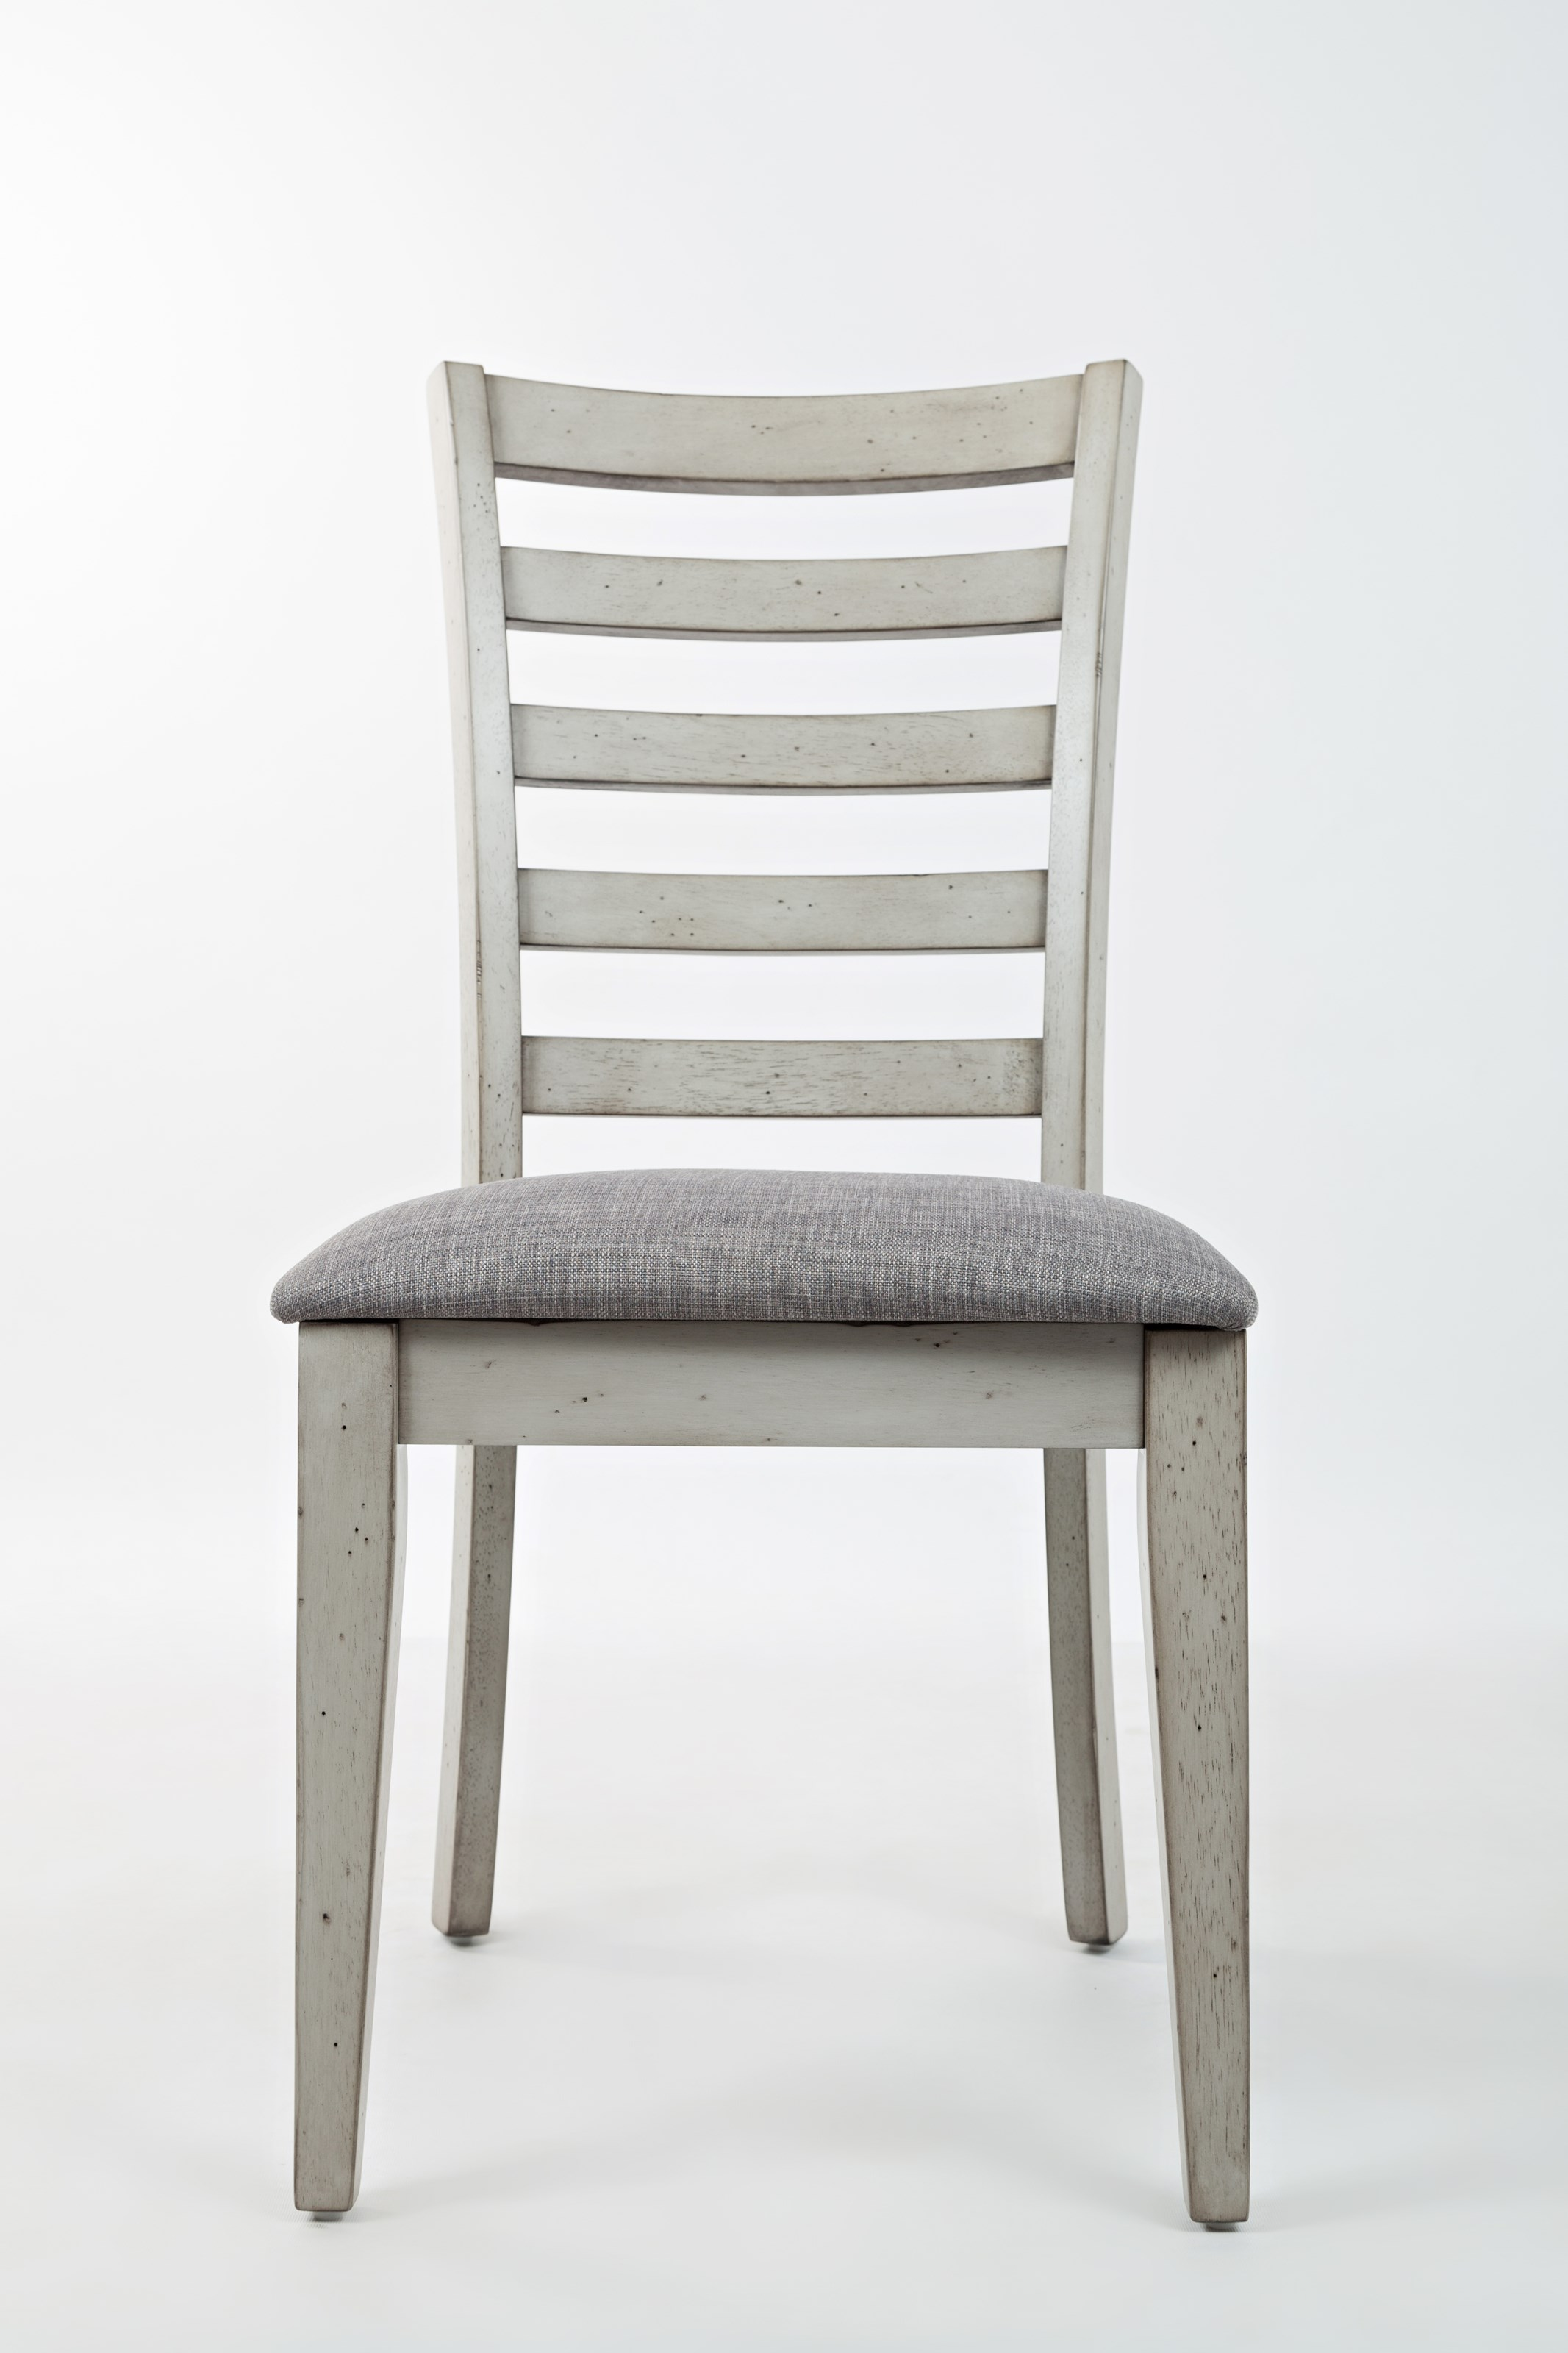 Ladder Back Dining Chair with Upholstered Seat by Jofran